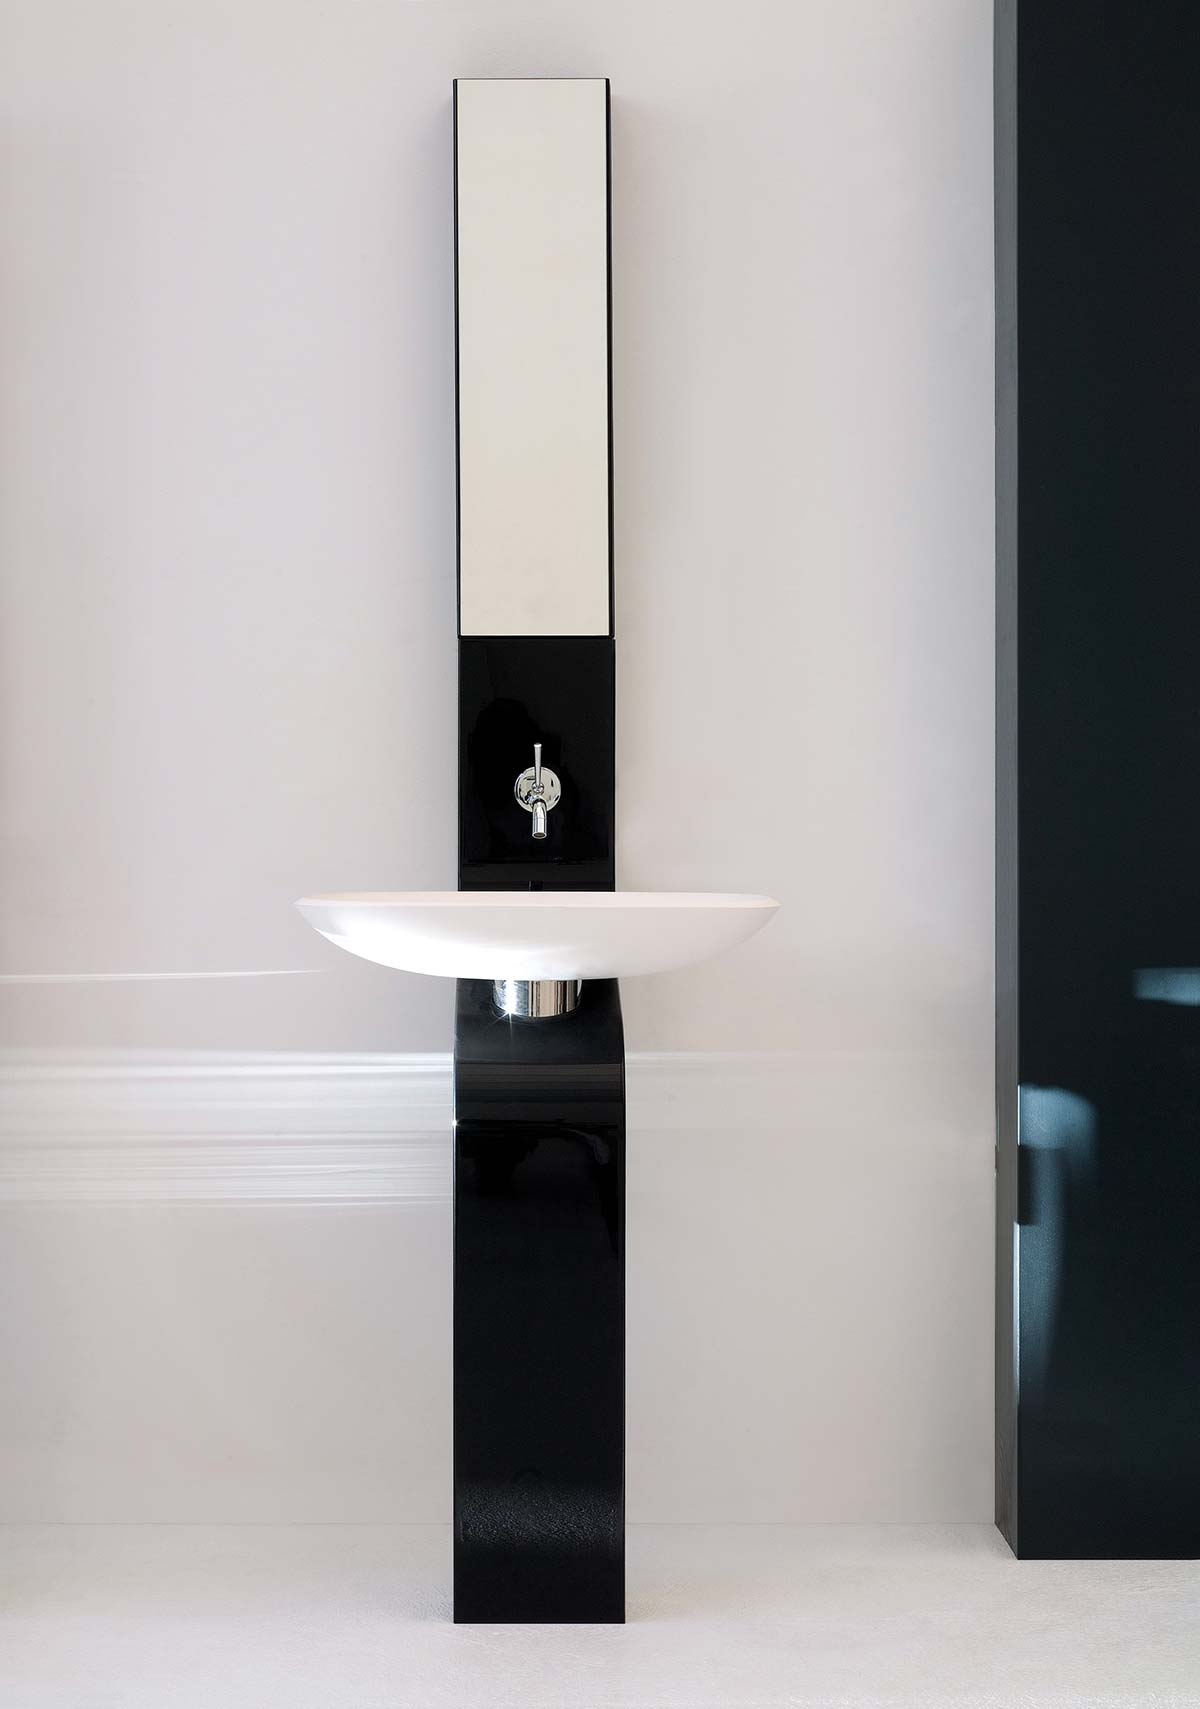 La Fontana by Meneghello Paolelli Associati